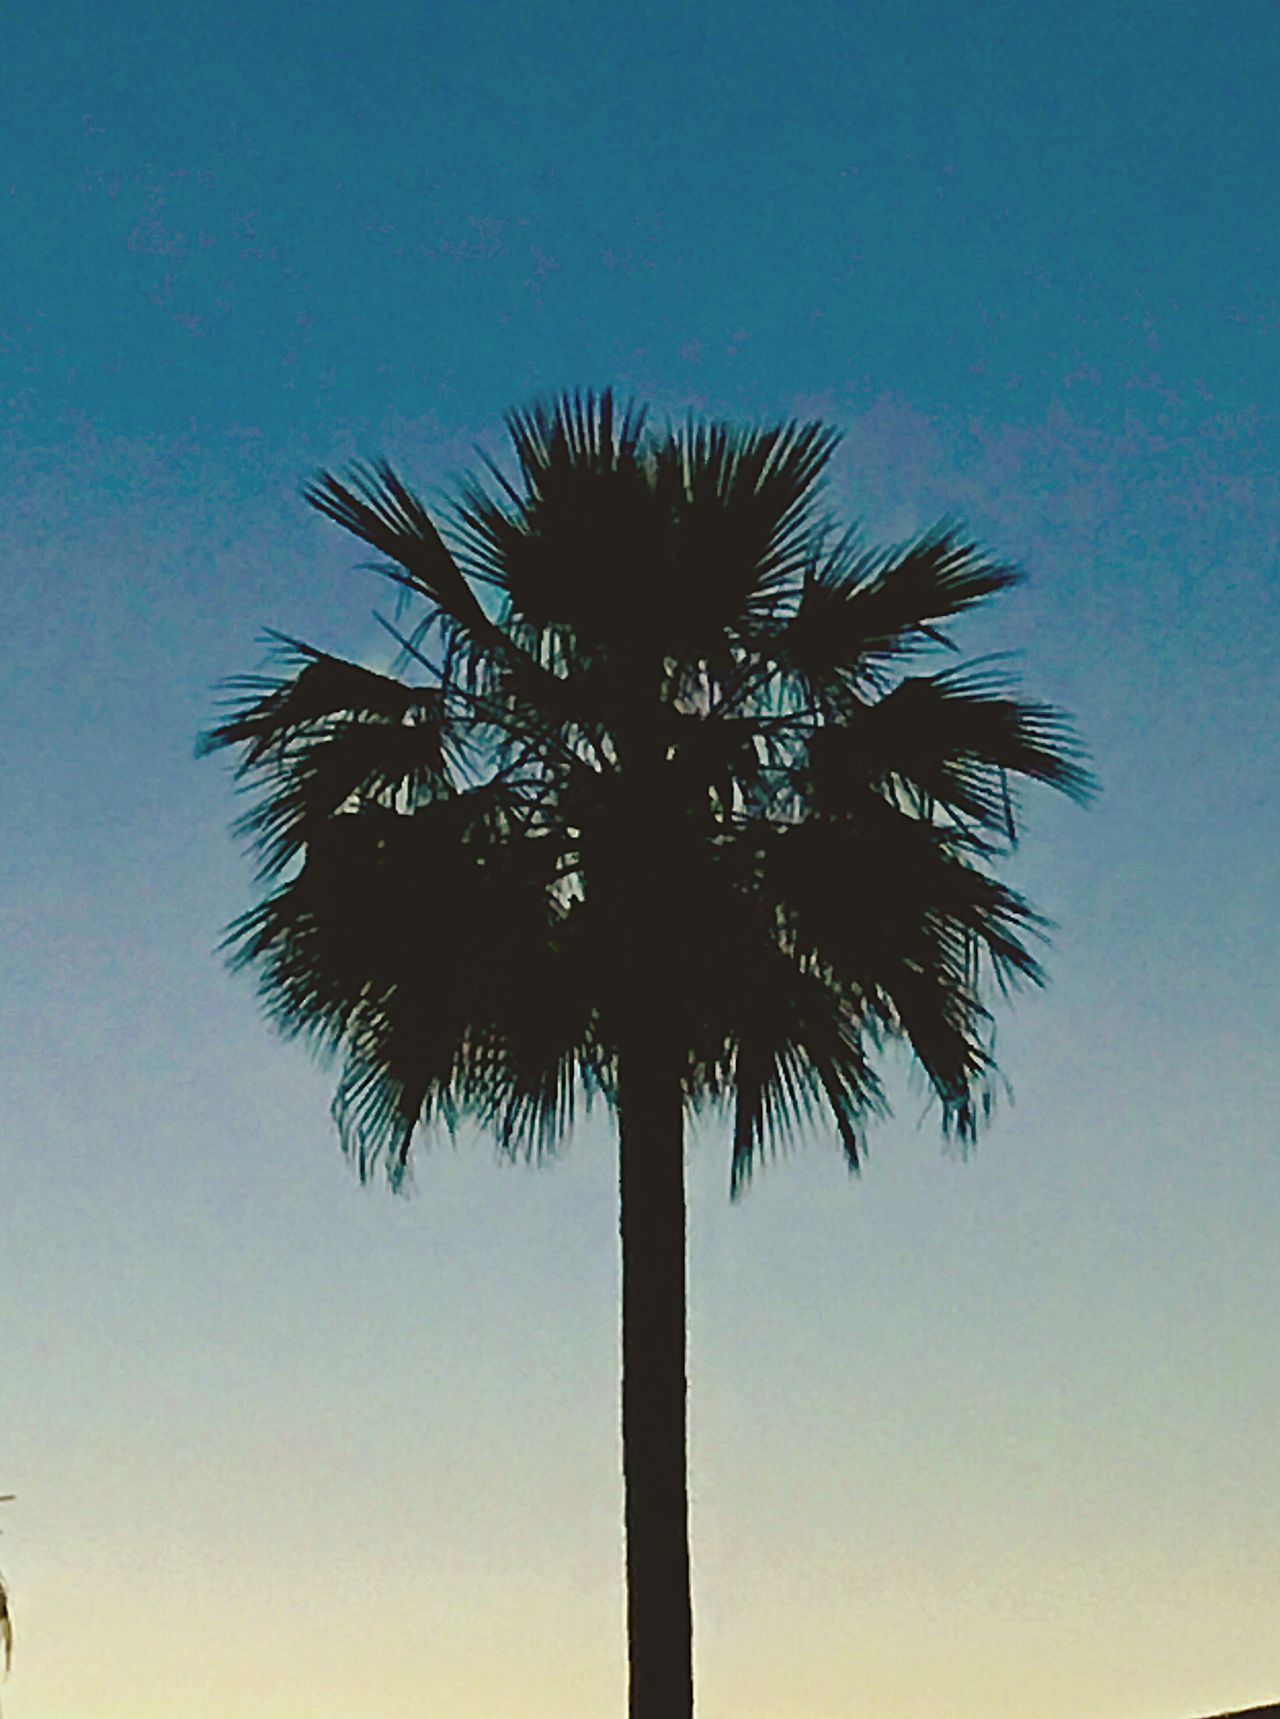 The lone Palm Low Angle View Tree Blue Growth Clear Sky No People Beauty In Nature Nature Tree Trunk Scenics Sky Outdoors Silhouette Tranquility Day Palm Frond Single Tree Dusk Sky